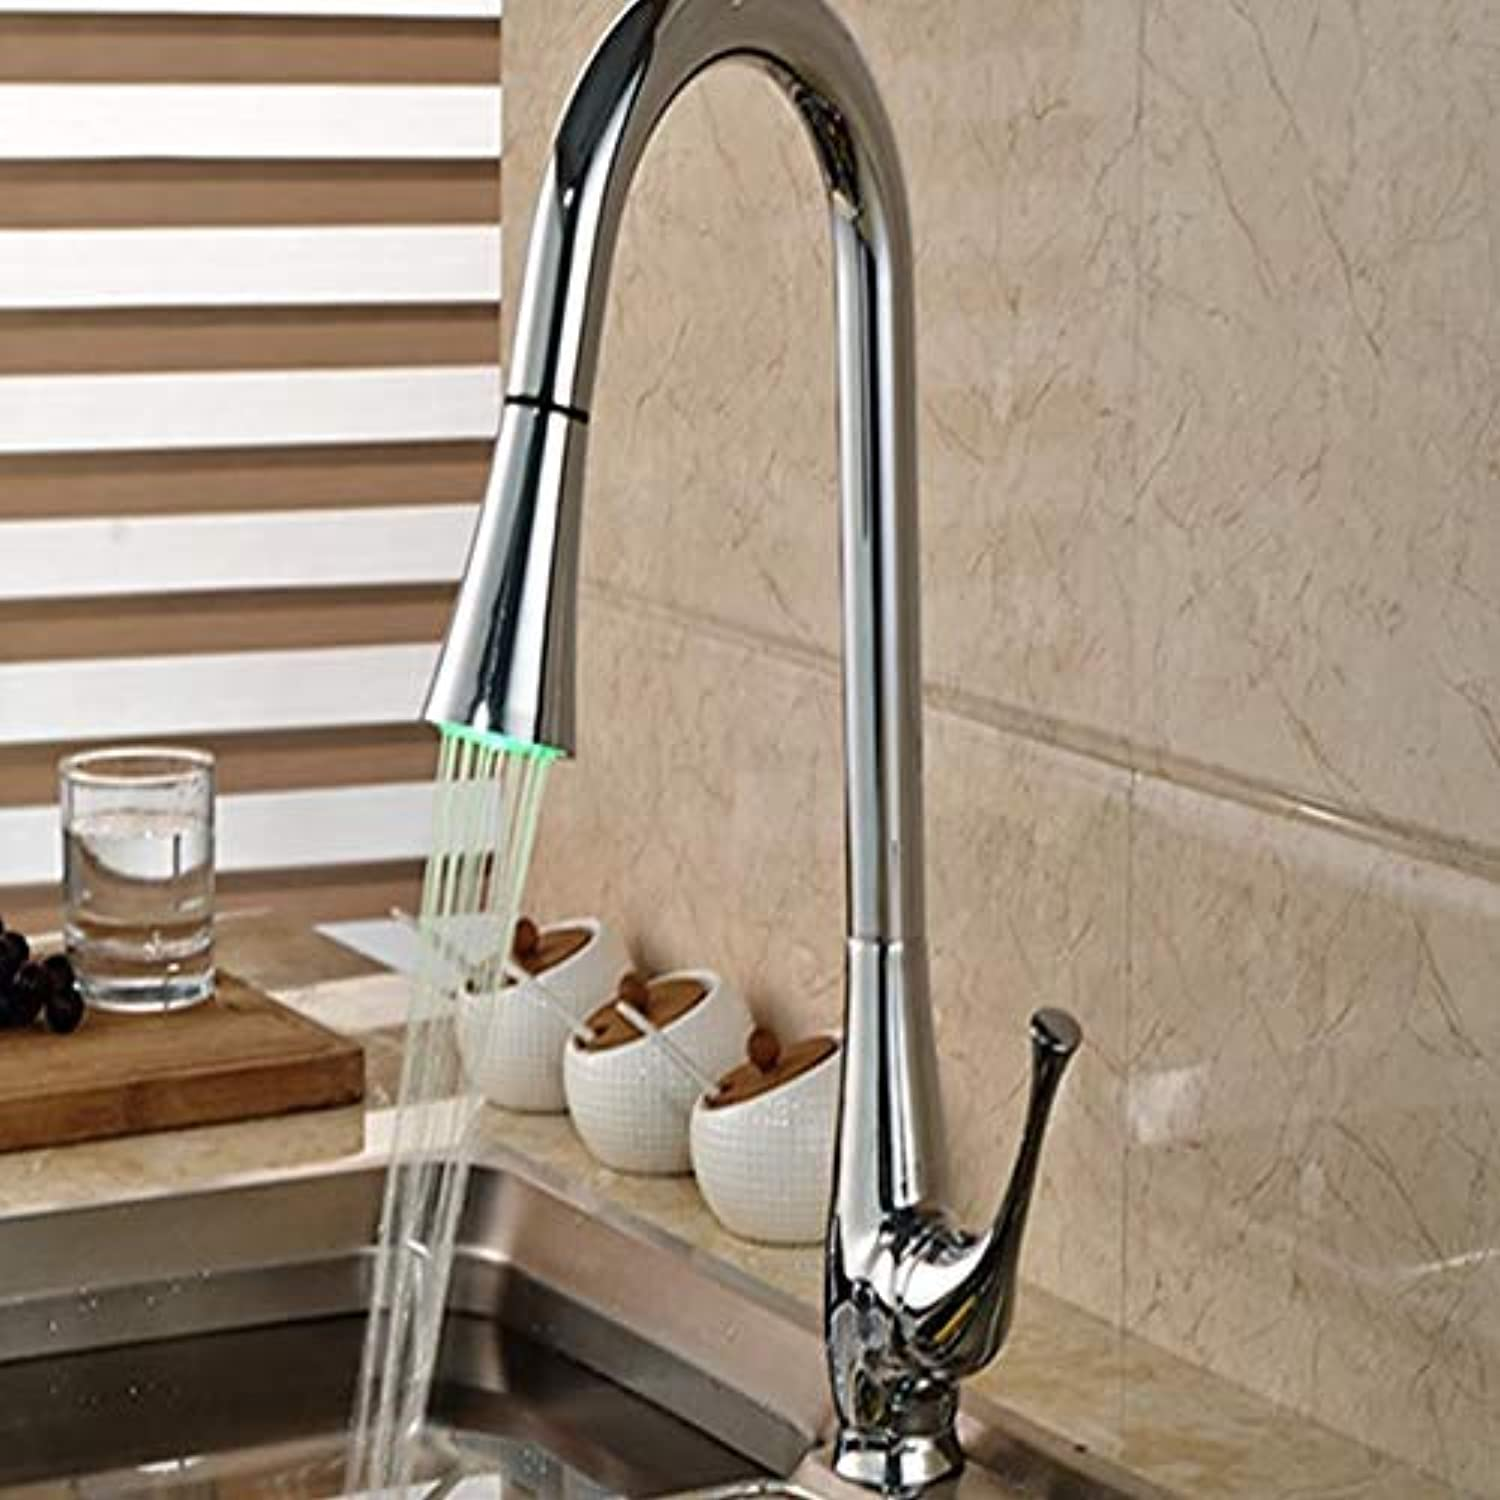 FuweiEncore Wholesale and Retail Led Pull Out Spout Brass Kitchen Faucet Single Handle Hole Vessel Basin Mixer Tap Hot and Cold Water (color   -, Size   -)